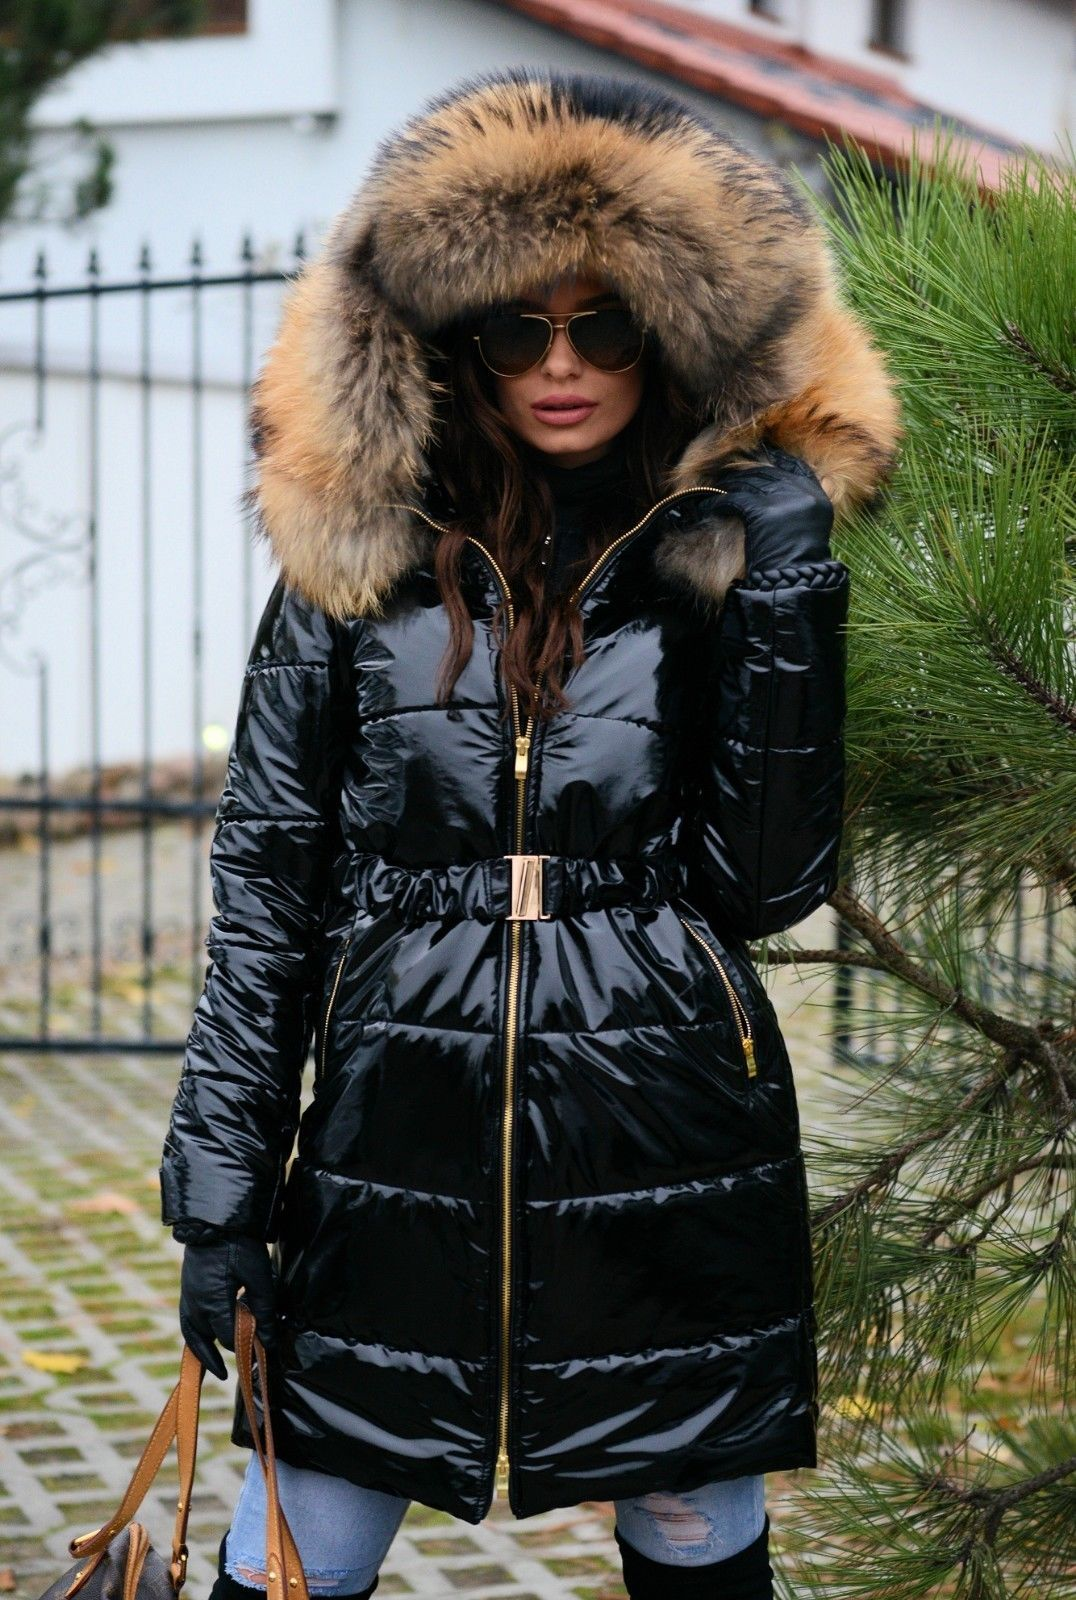 Classic Black Shiny Coat With Belt And Natural Fur Parka Women Hooded Outerwear Coat [ 1600 x 1076 Pixel ]